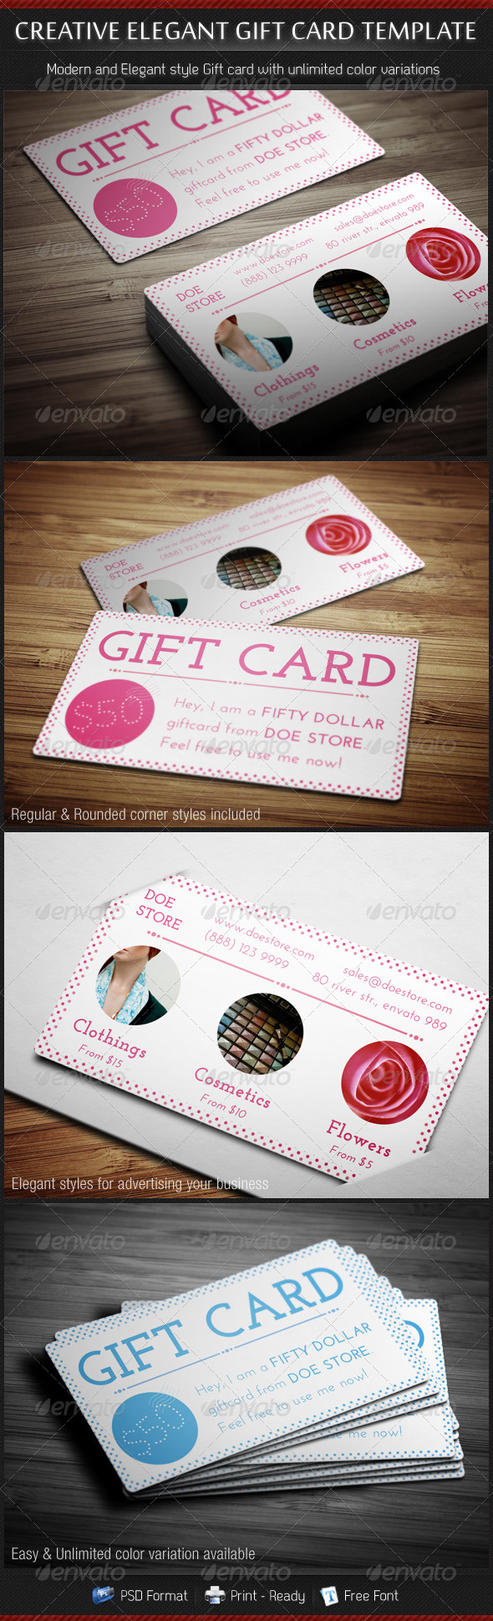 Creative Elegant Gift Card Template by madebygb